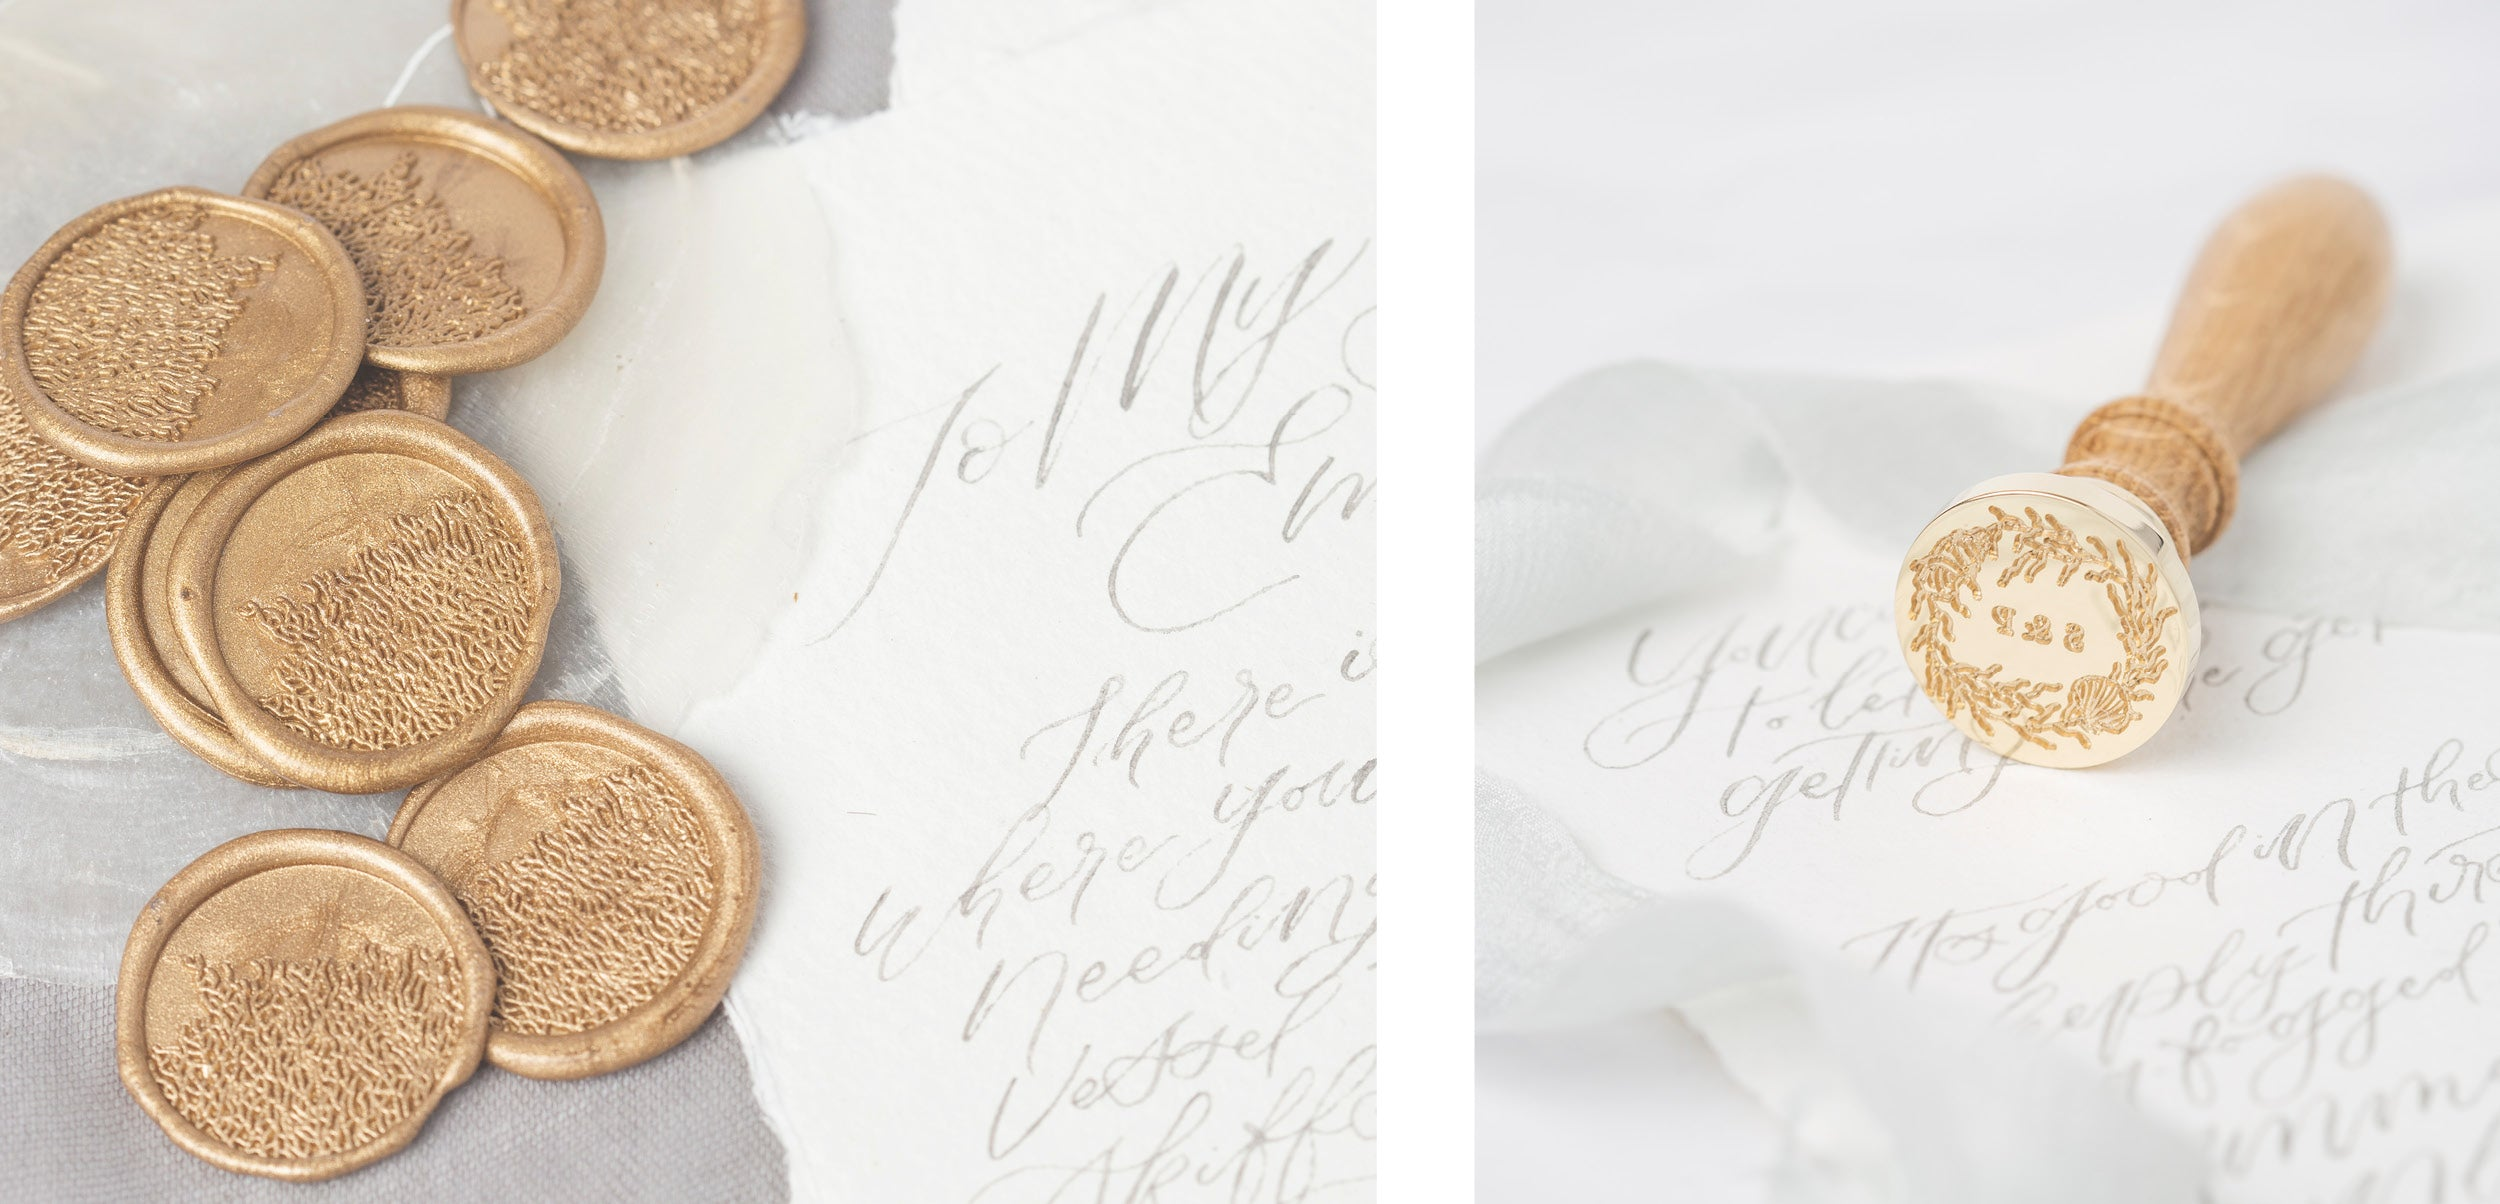 Sea Breeze Coastal Wax Seals for Seaside Wedding Invitations | Heirloom Seals